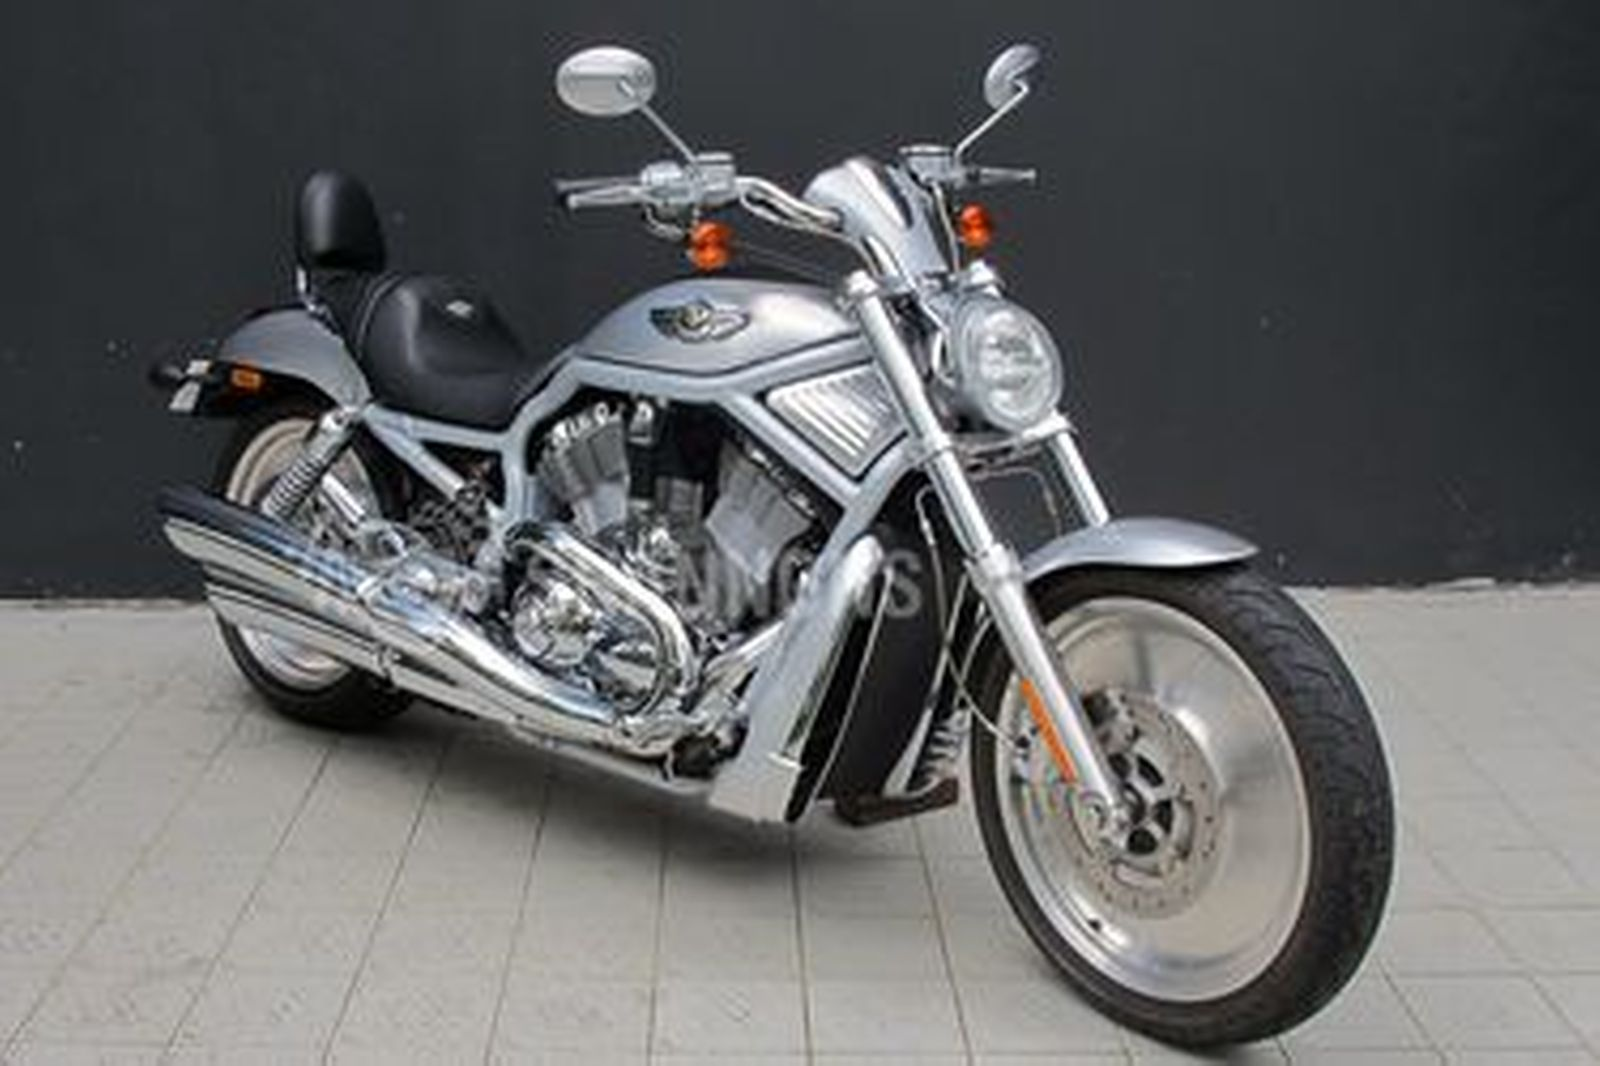 Harley-Davidson VRSCA V-Rod 100th Anniversary Edition Motorcycle